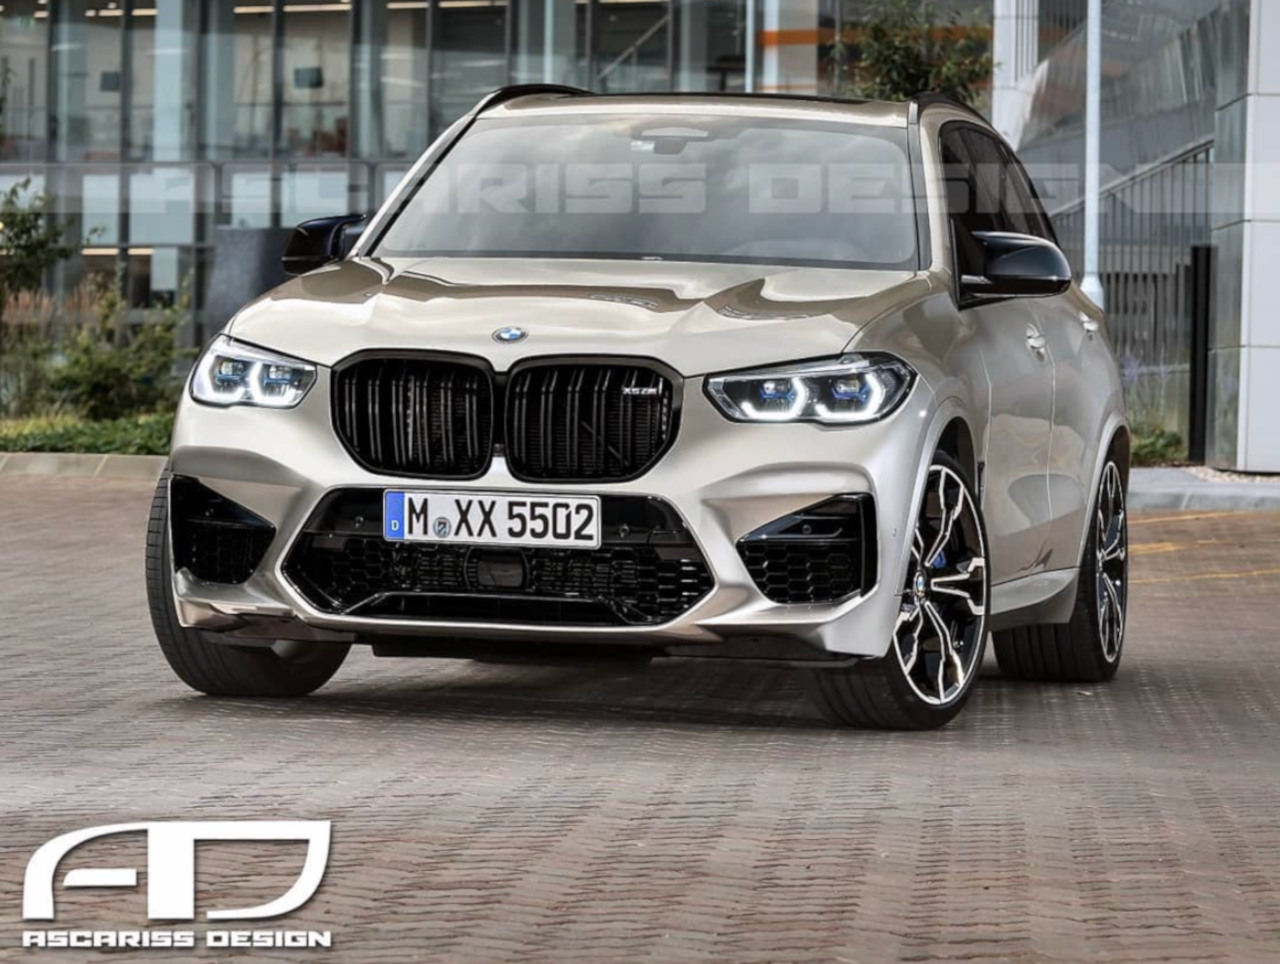 69 The 2020 BMW X5 Spy Shoot